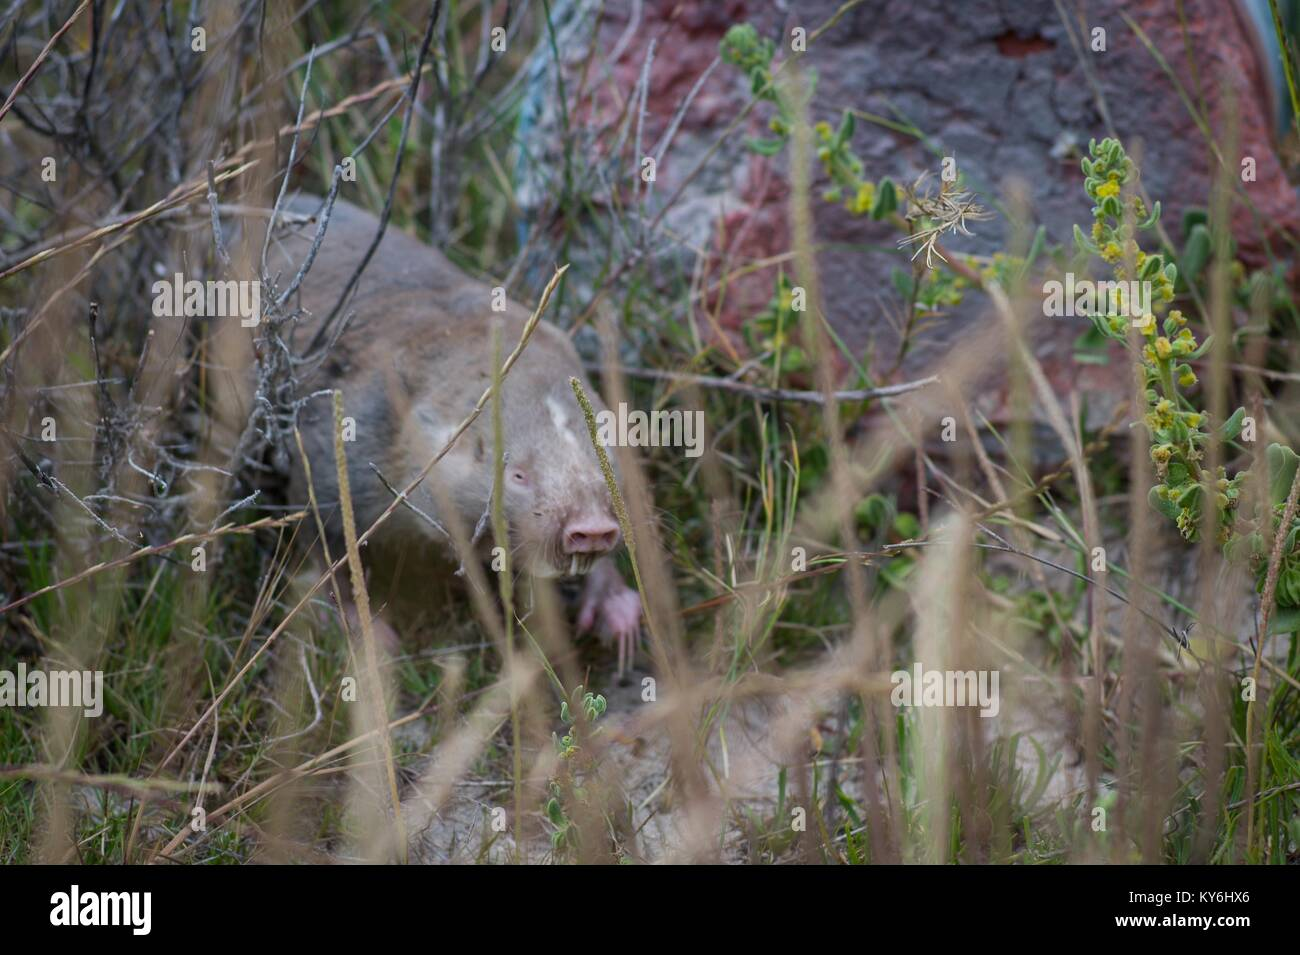 A Cape Dune Mole Rat makes a rare appearance above ground in Struisbay, Western Cape, South Africa - Stock Image